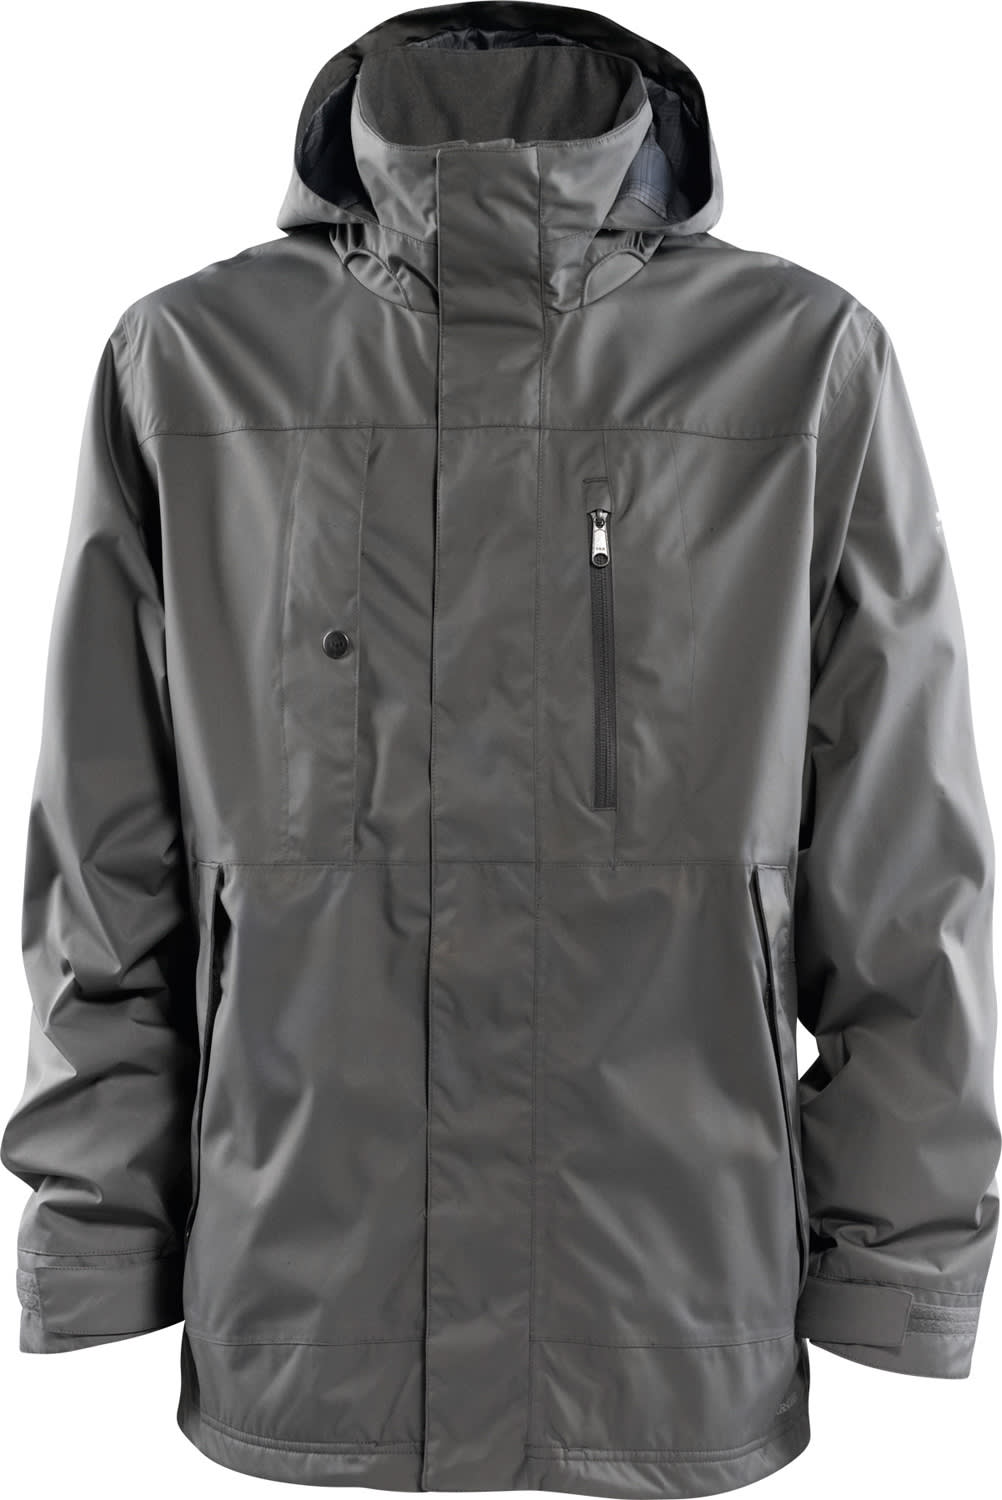 Shop for Foursquare Classic Snowboard Jacket Cast Iron - Men's